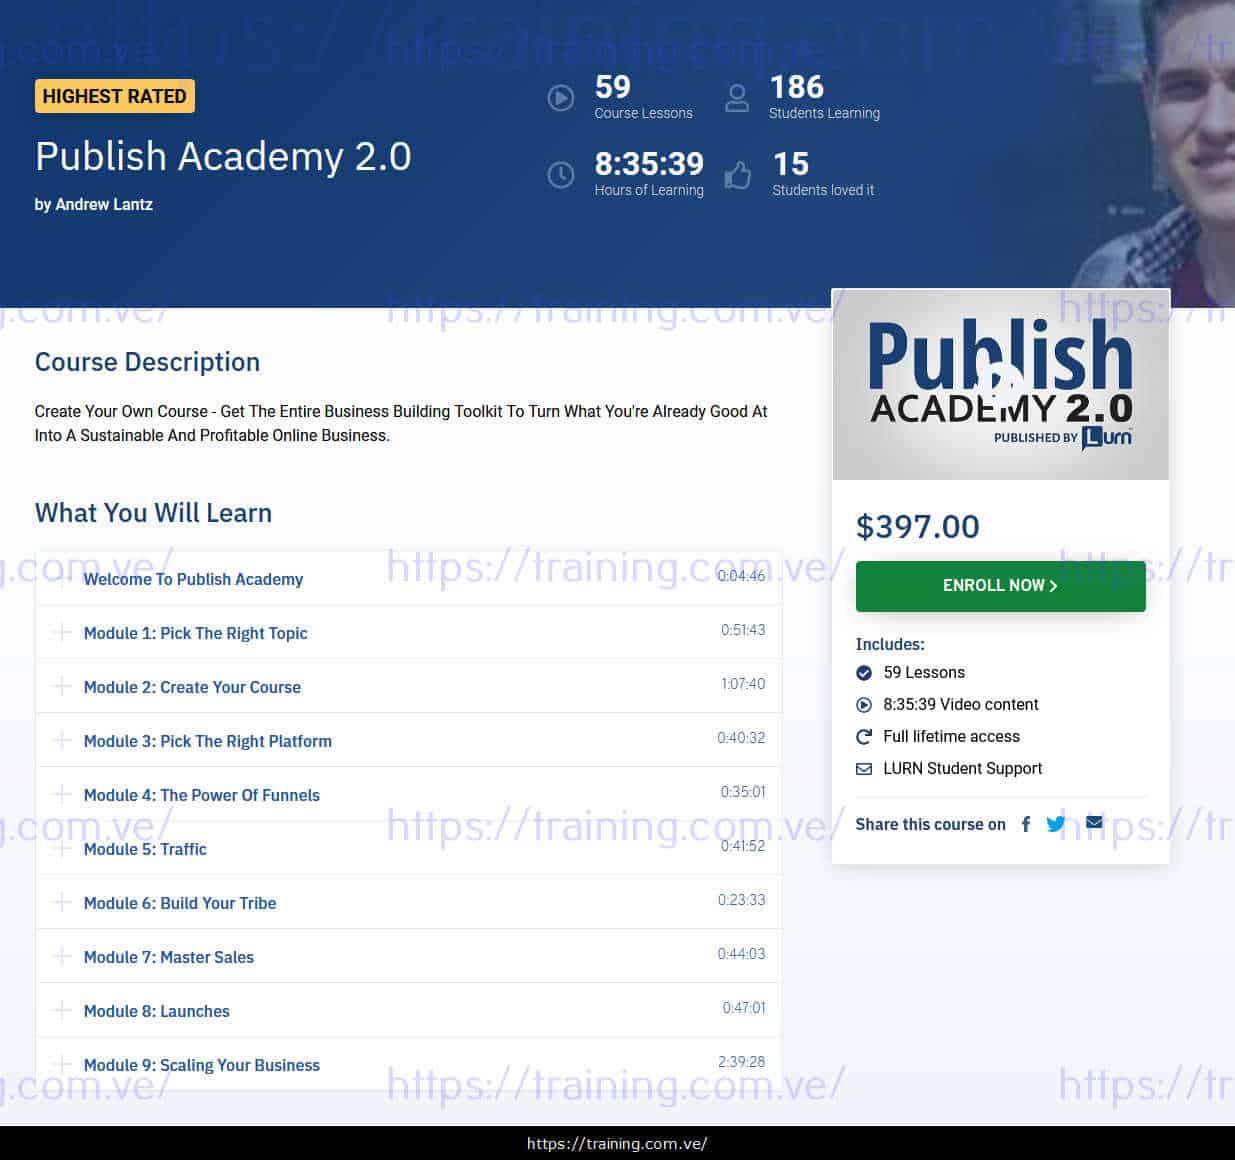 Publish Academy 2.0 by Andrew Lantz sales page